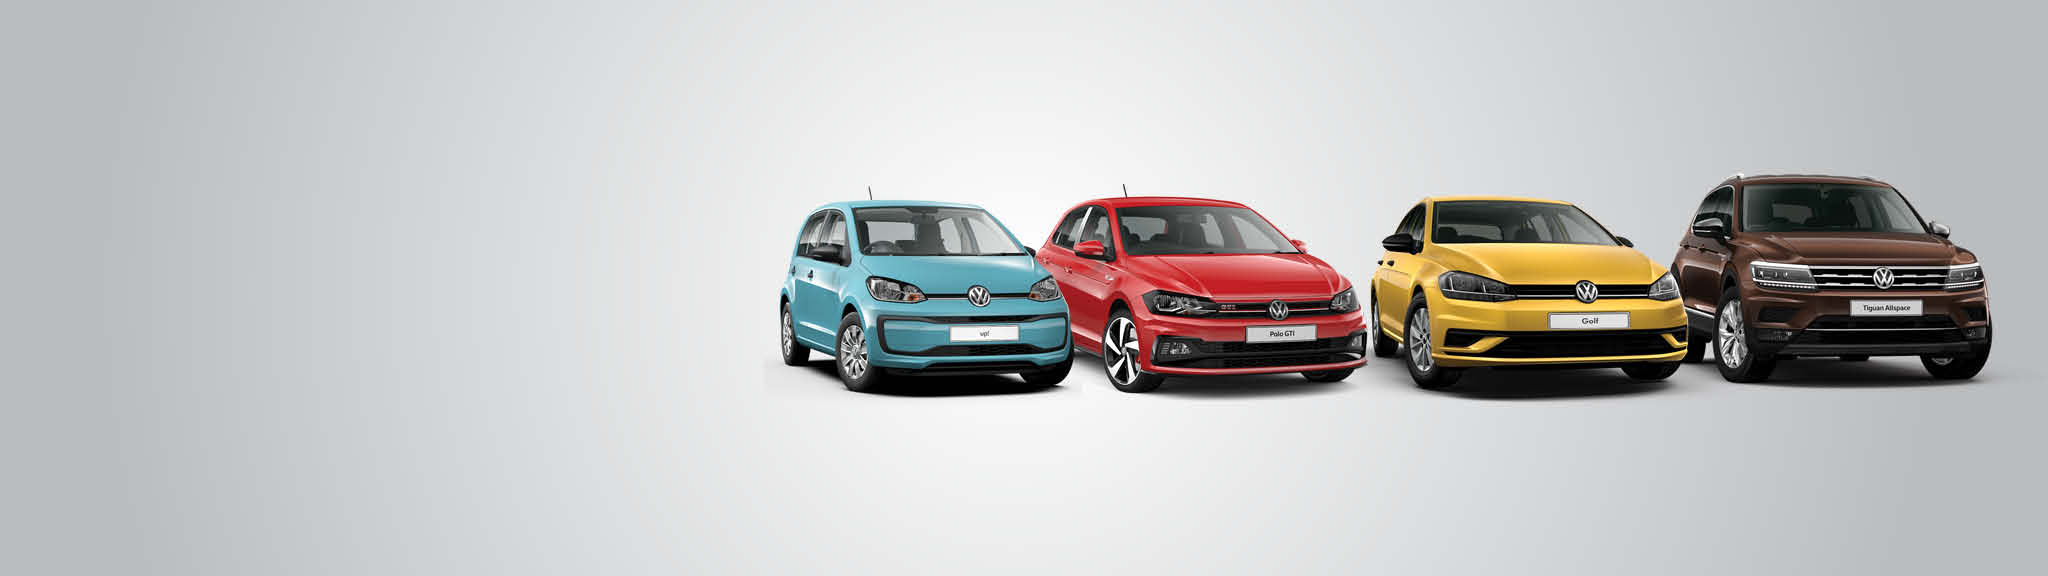 Volkswagen used vehicles